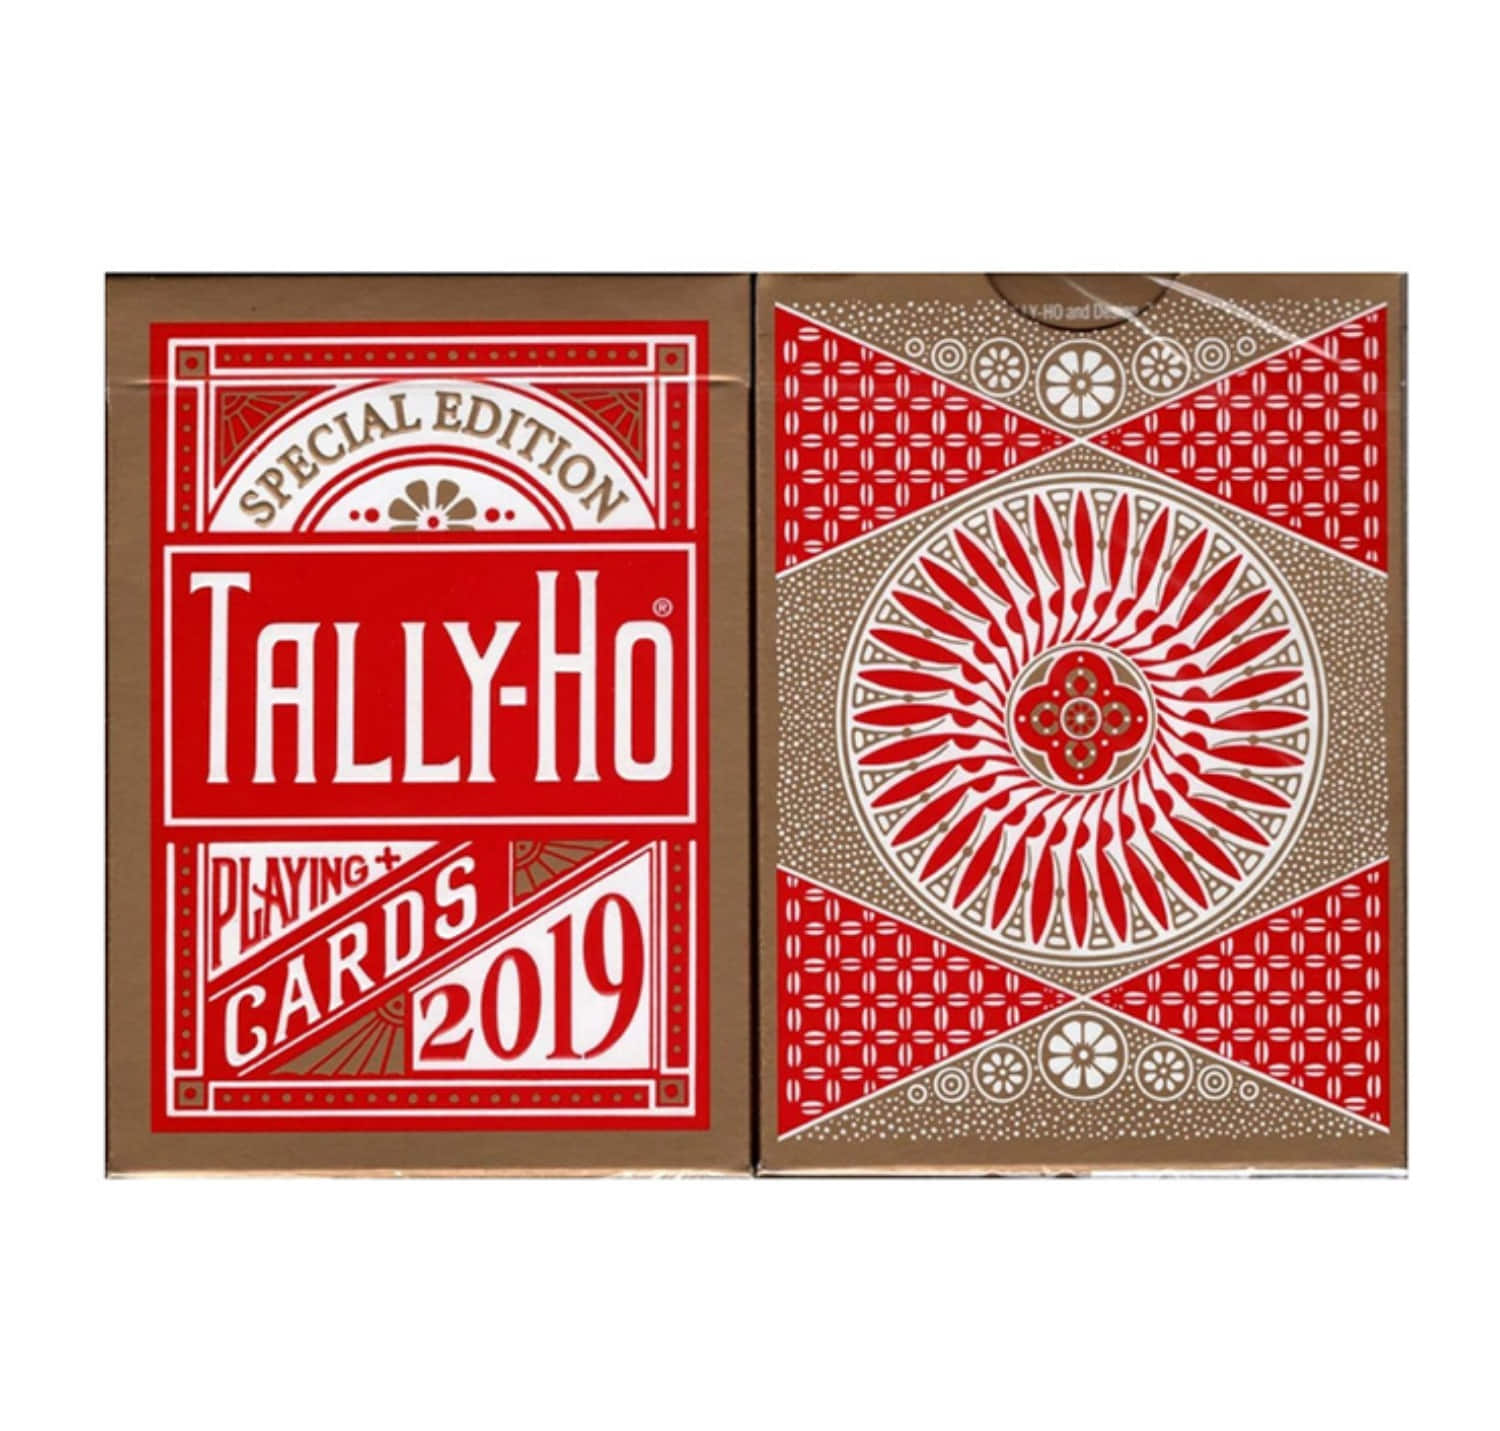 [탈리호 스페셜에디션 2019/MGM] Tally-ho Speicla Edition